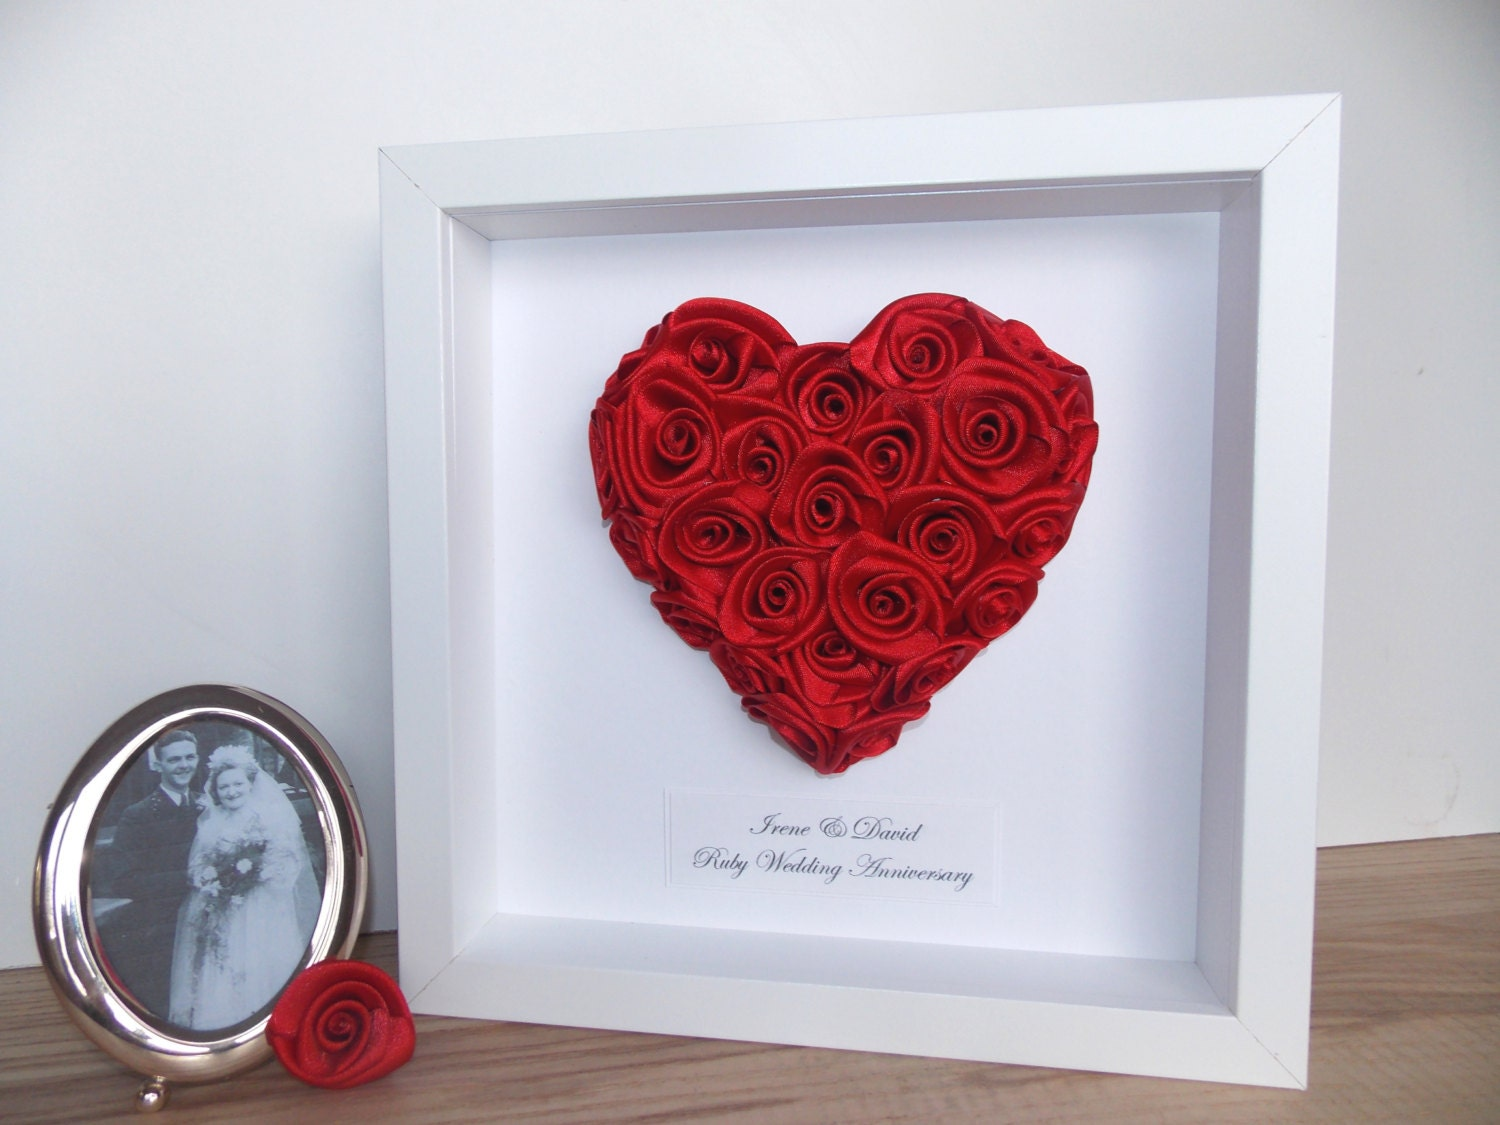 What Gift For 40th Wedding Anniversary: Ruby Wedding Anniversary 3d Framed Picture Heart Of Roses